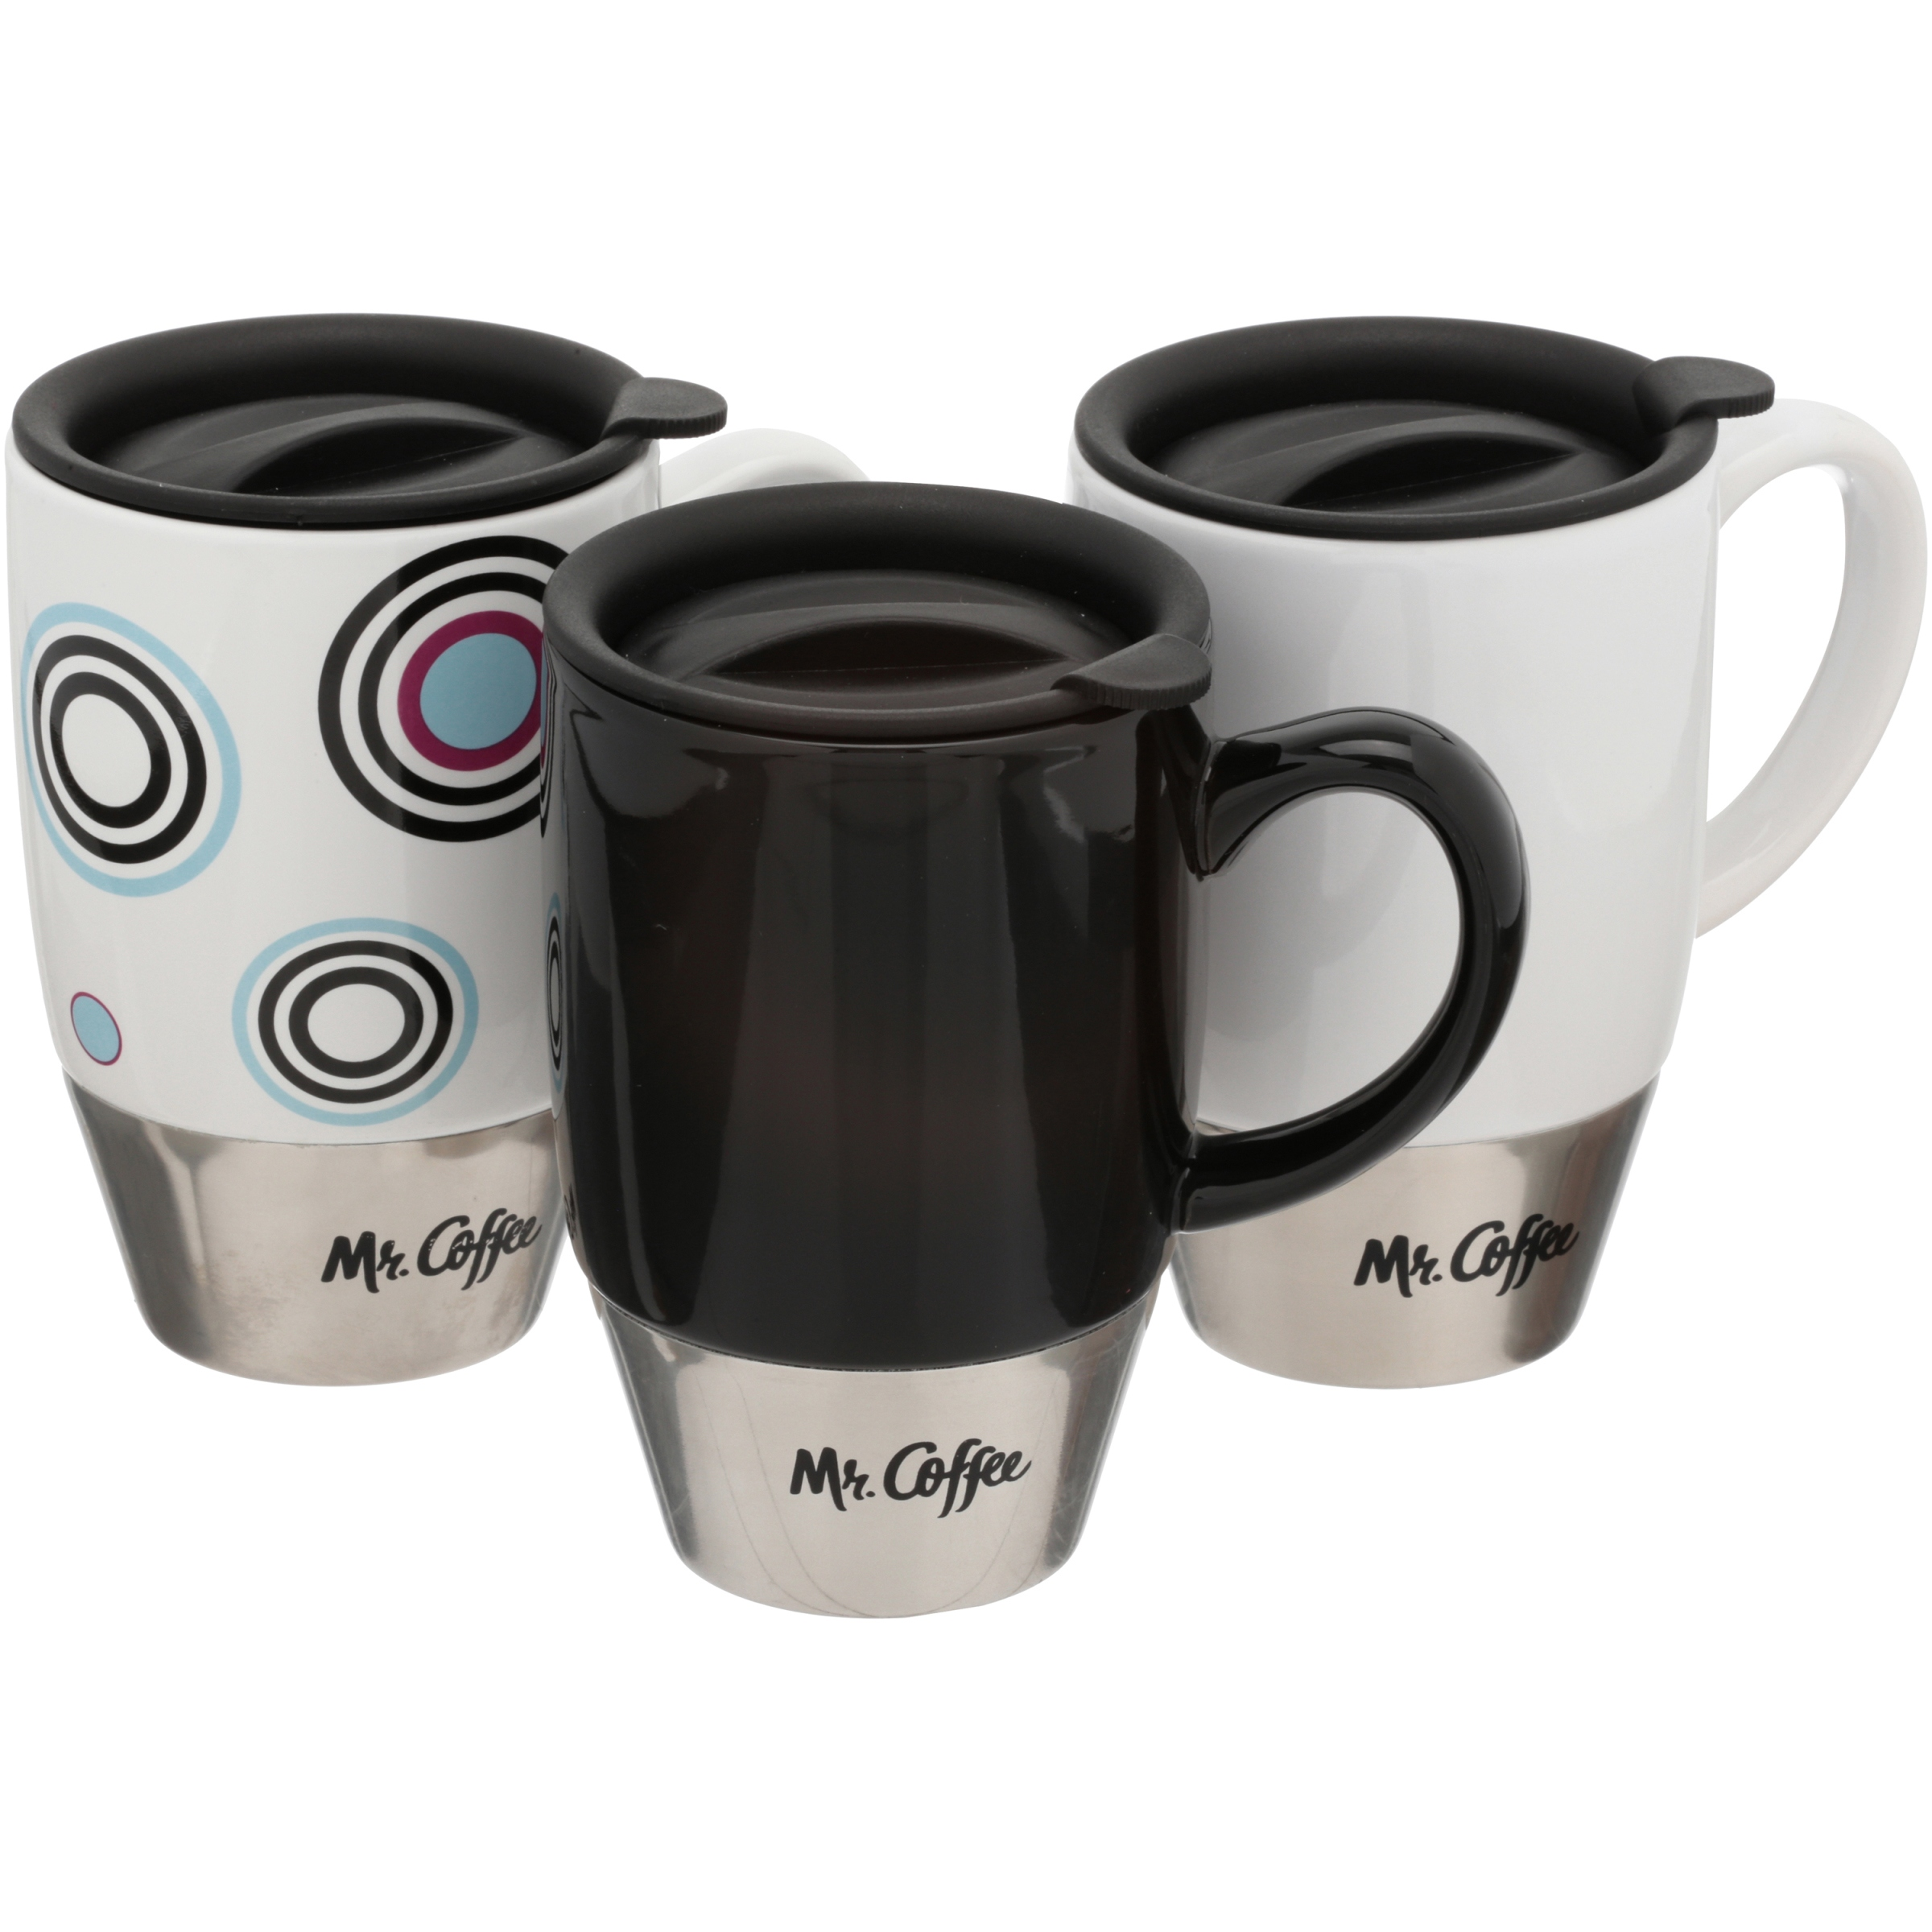 Mr. Coffee Couplet Travel Mug 3 ct Pack